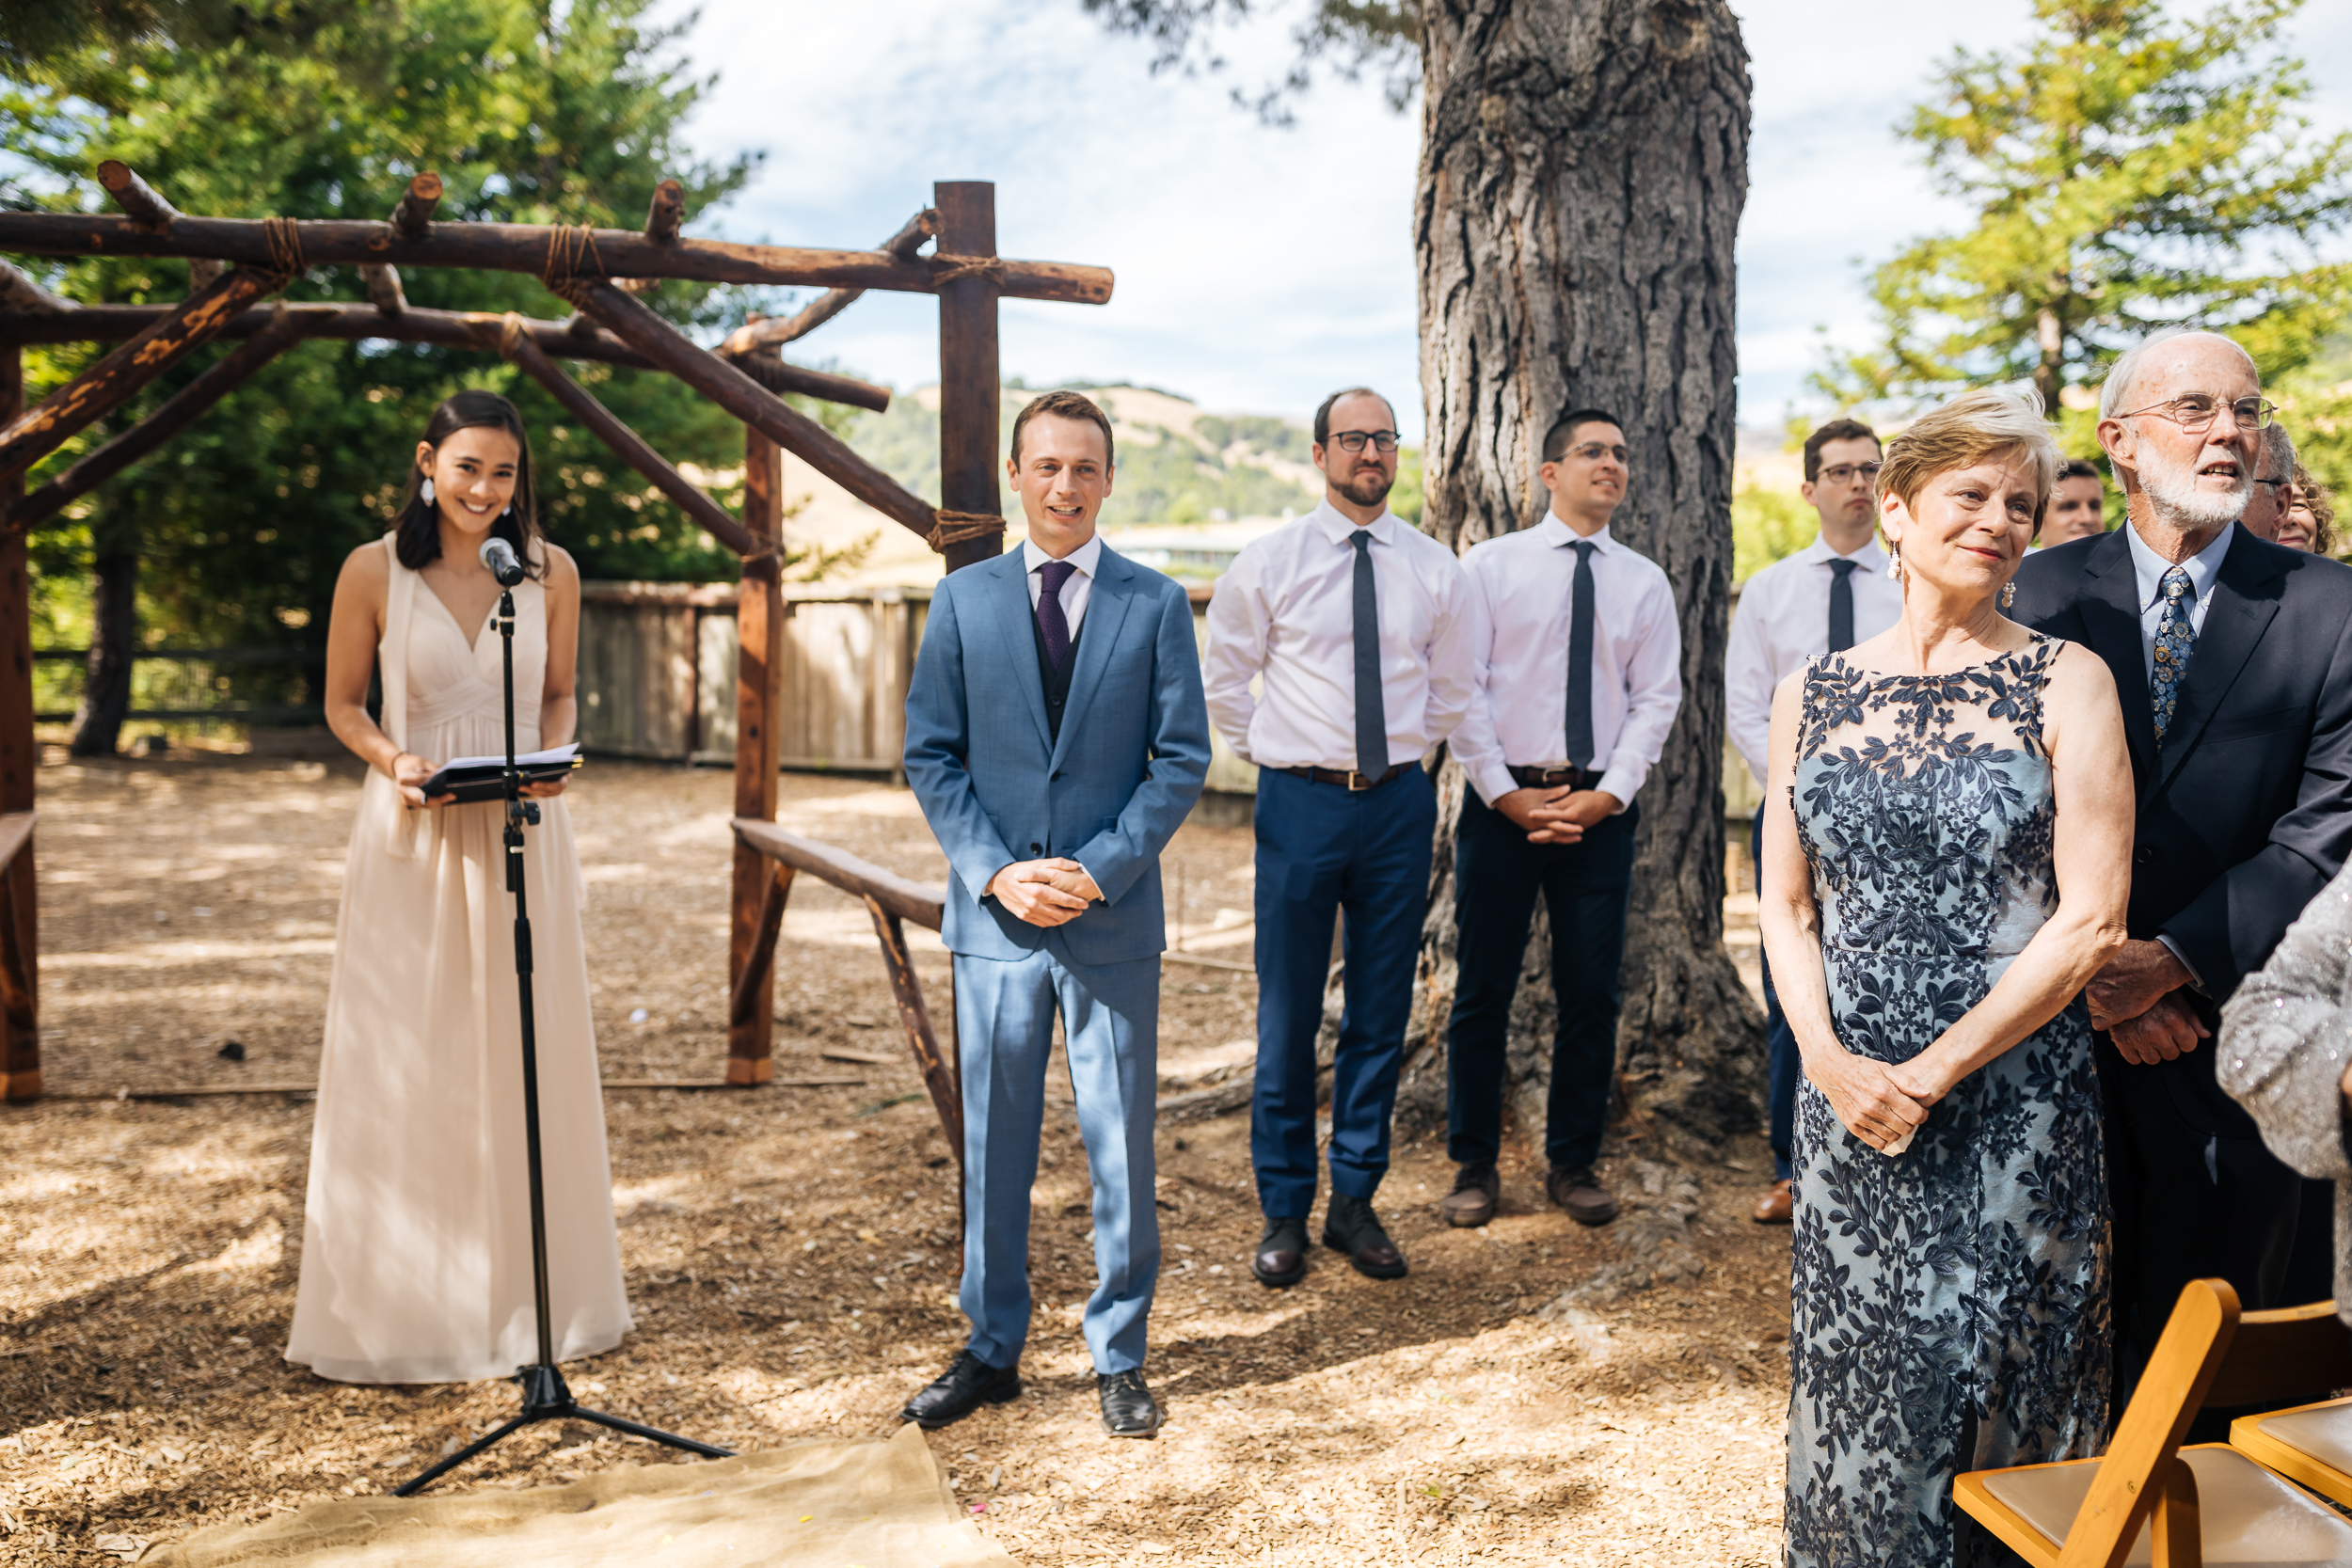 Rancho Nicasio Wedding 2018-154.jpg